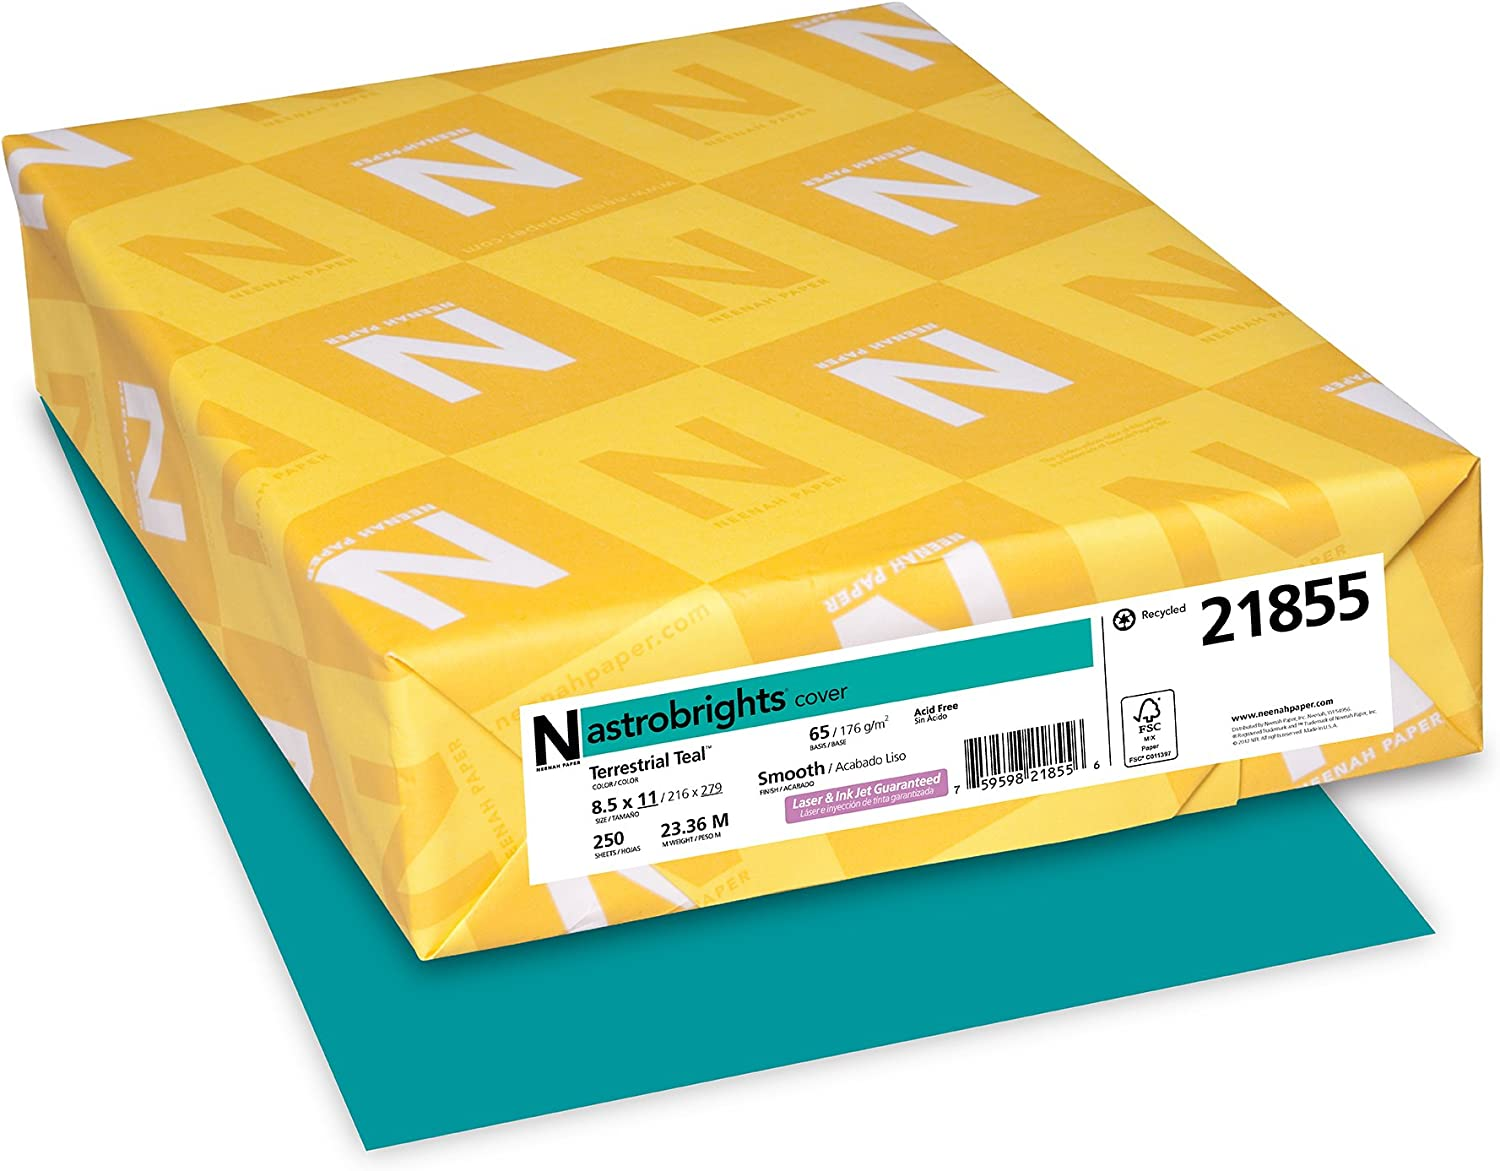 """Wausau Astrobrights Colored Cardstock, 8.5"""" x 11"""", 65 lb/176 GSM, Terrestrial Teal, 250 Sheets (21855)"""